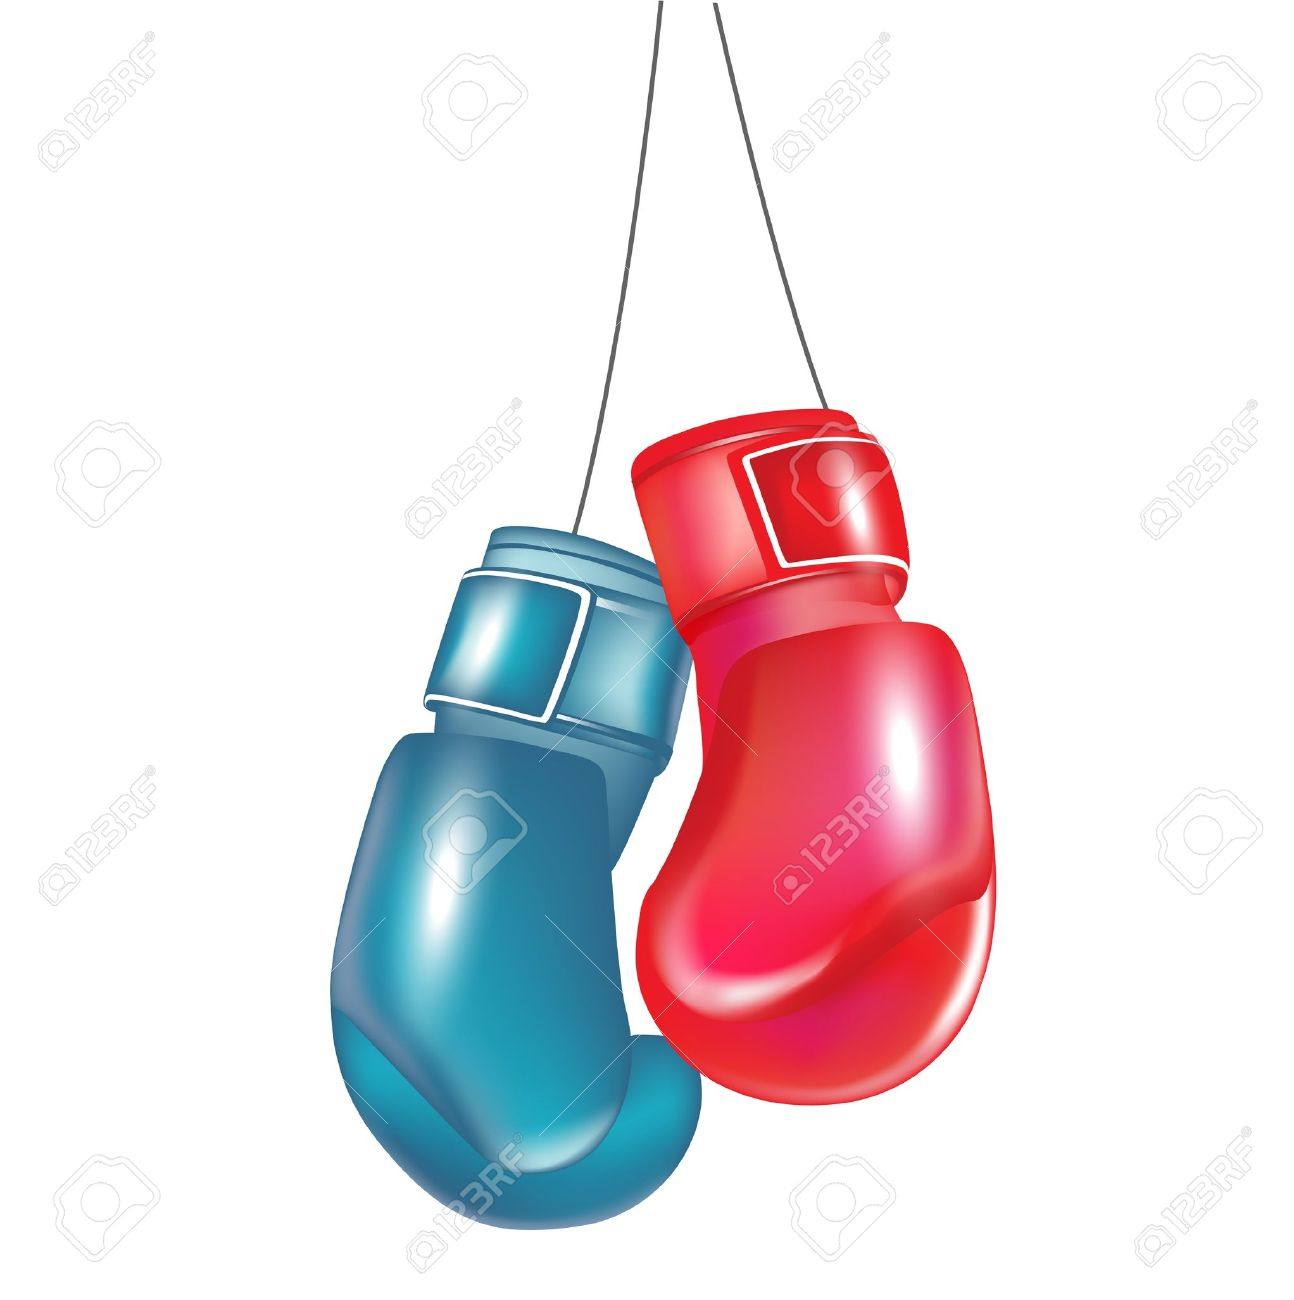 Two Boxing Gloves Hanging Isolated On White Royalty Free Cliparts ...